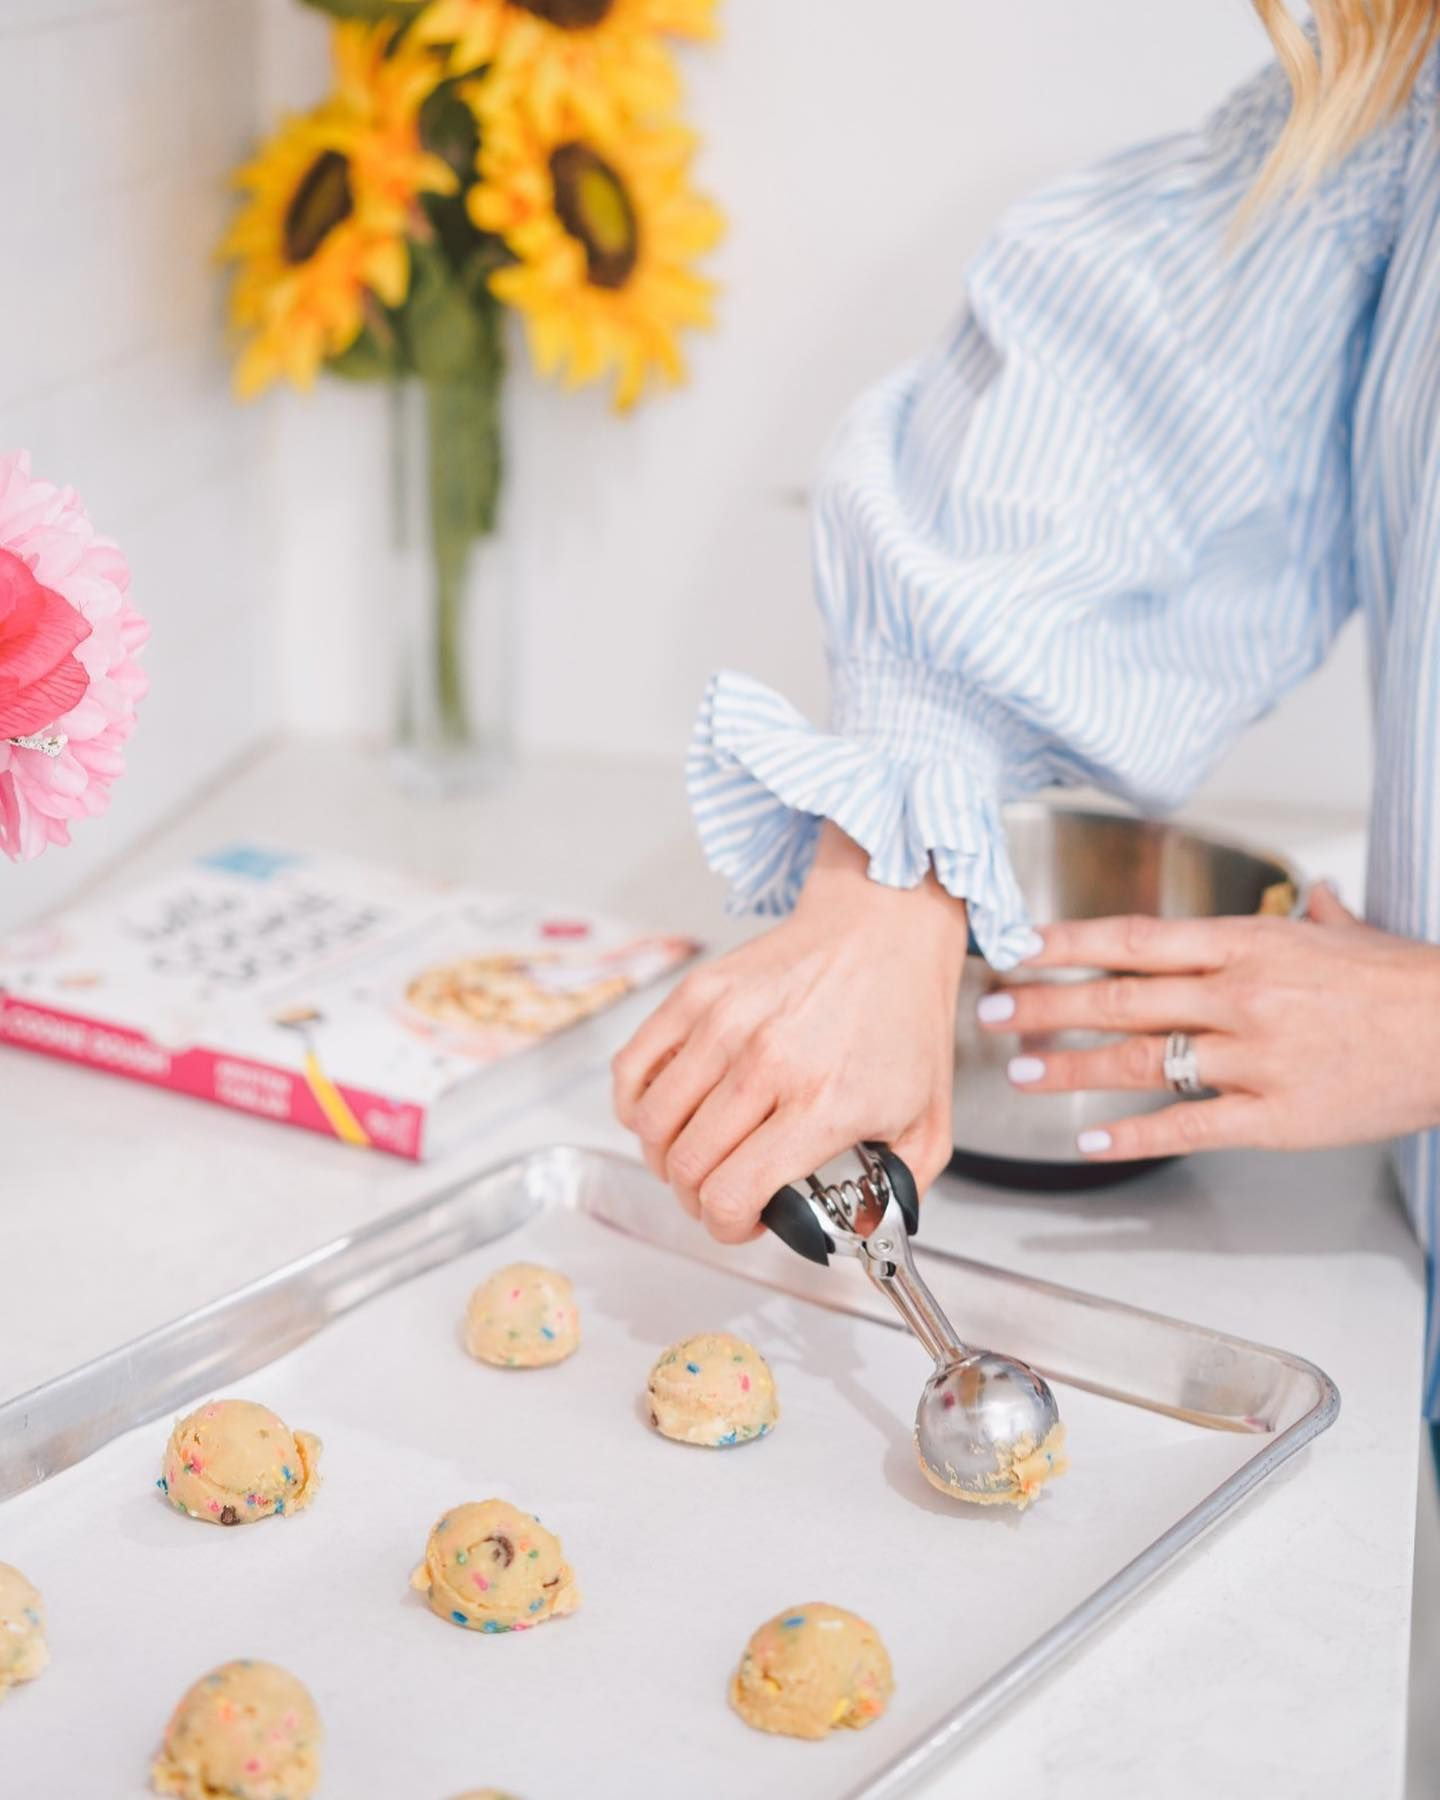 Viral Sensation DŌ Cookie Dough Is Coming Out With A Cookbook So You Can Make Their Treats At Home